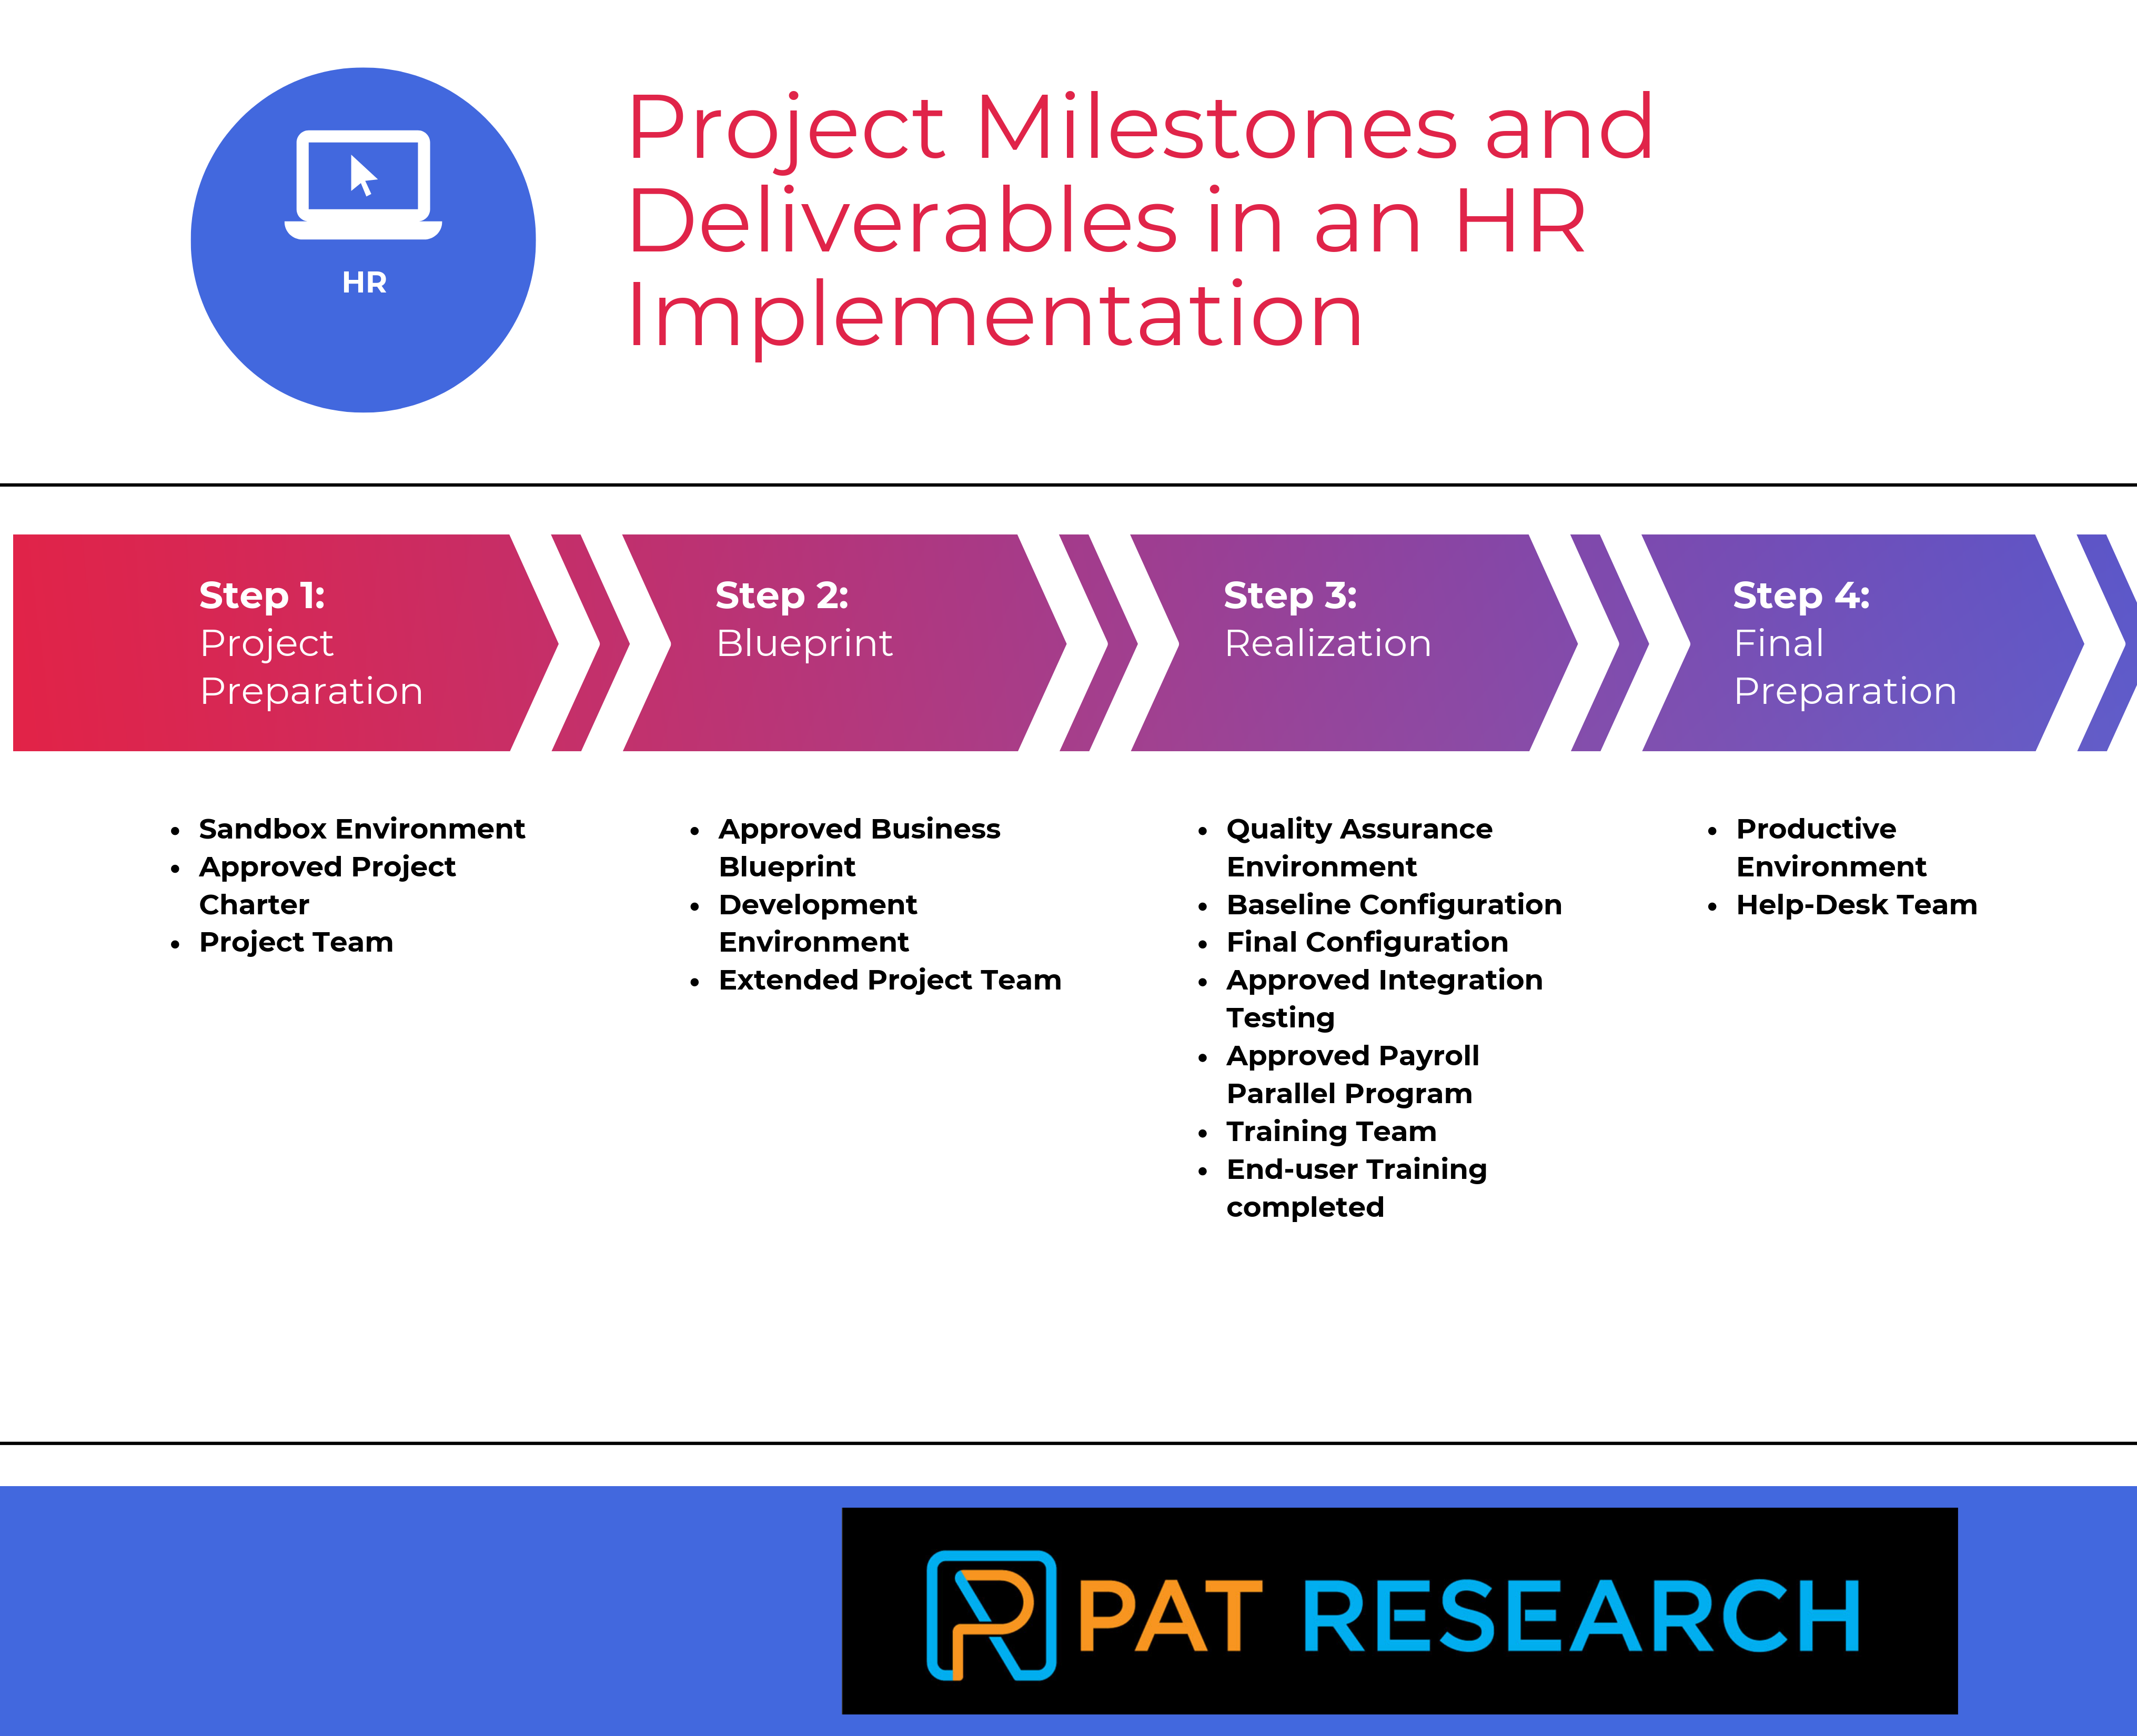 What are the Project Milestones and Deliverables in an HR Implementation